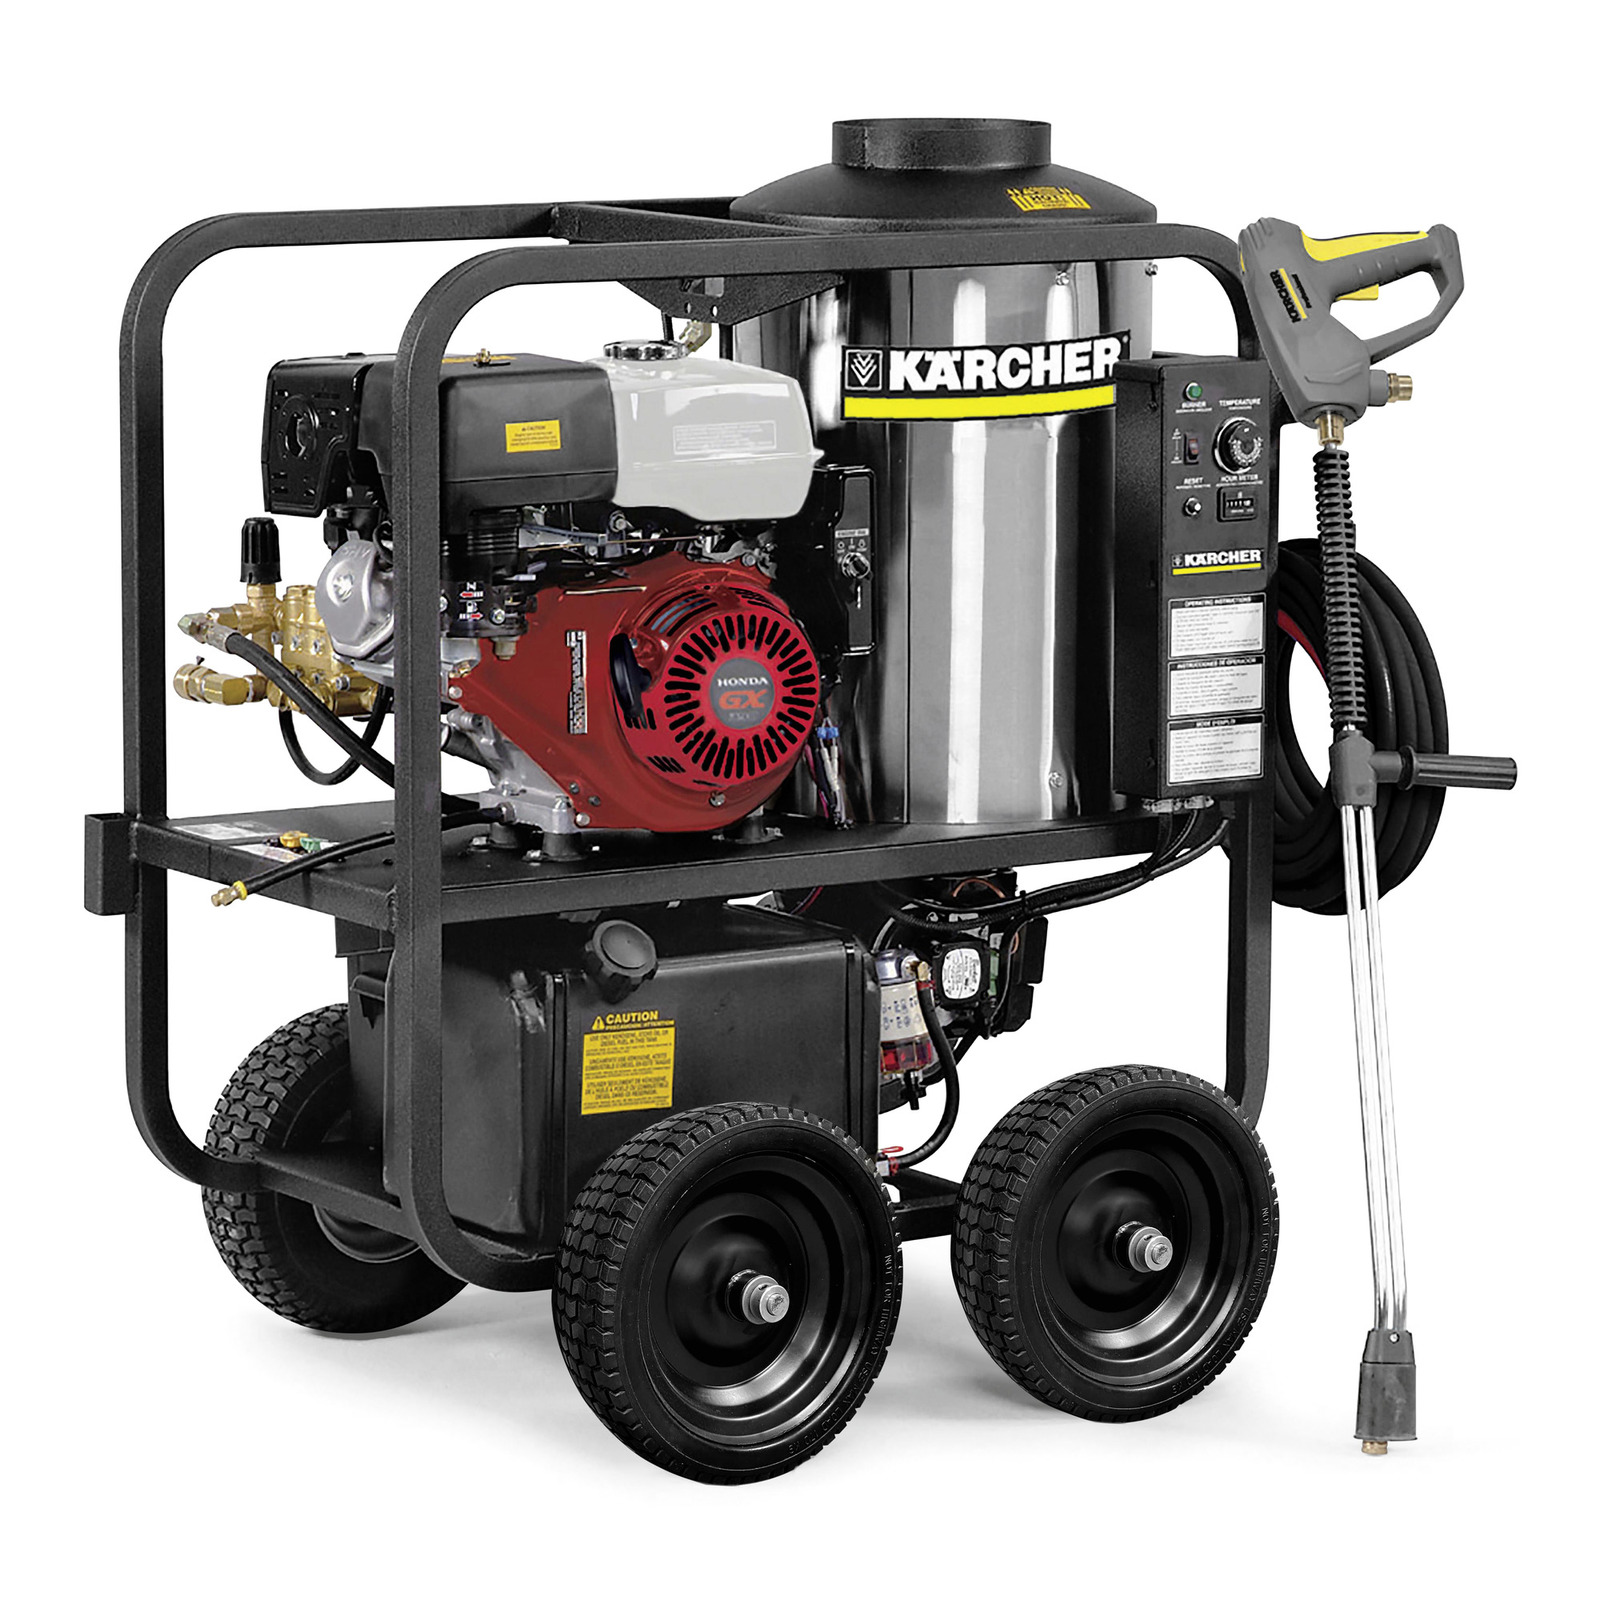 full?position=productlist&bp=md gas diesel powered hot water pressure washers karcher  at soozxer.org